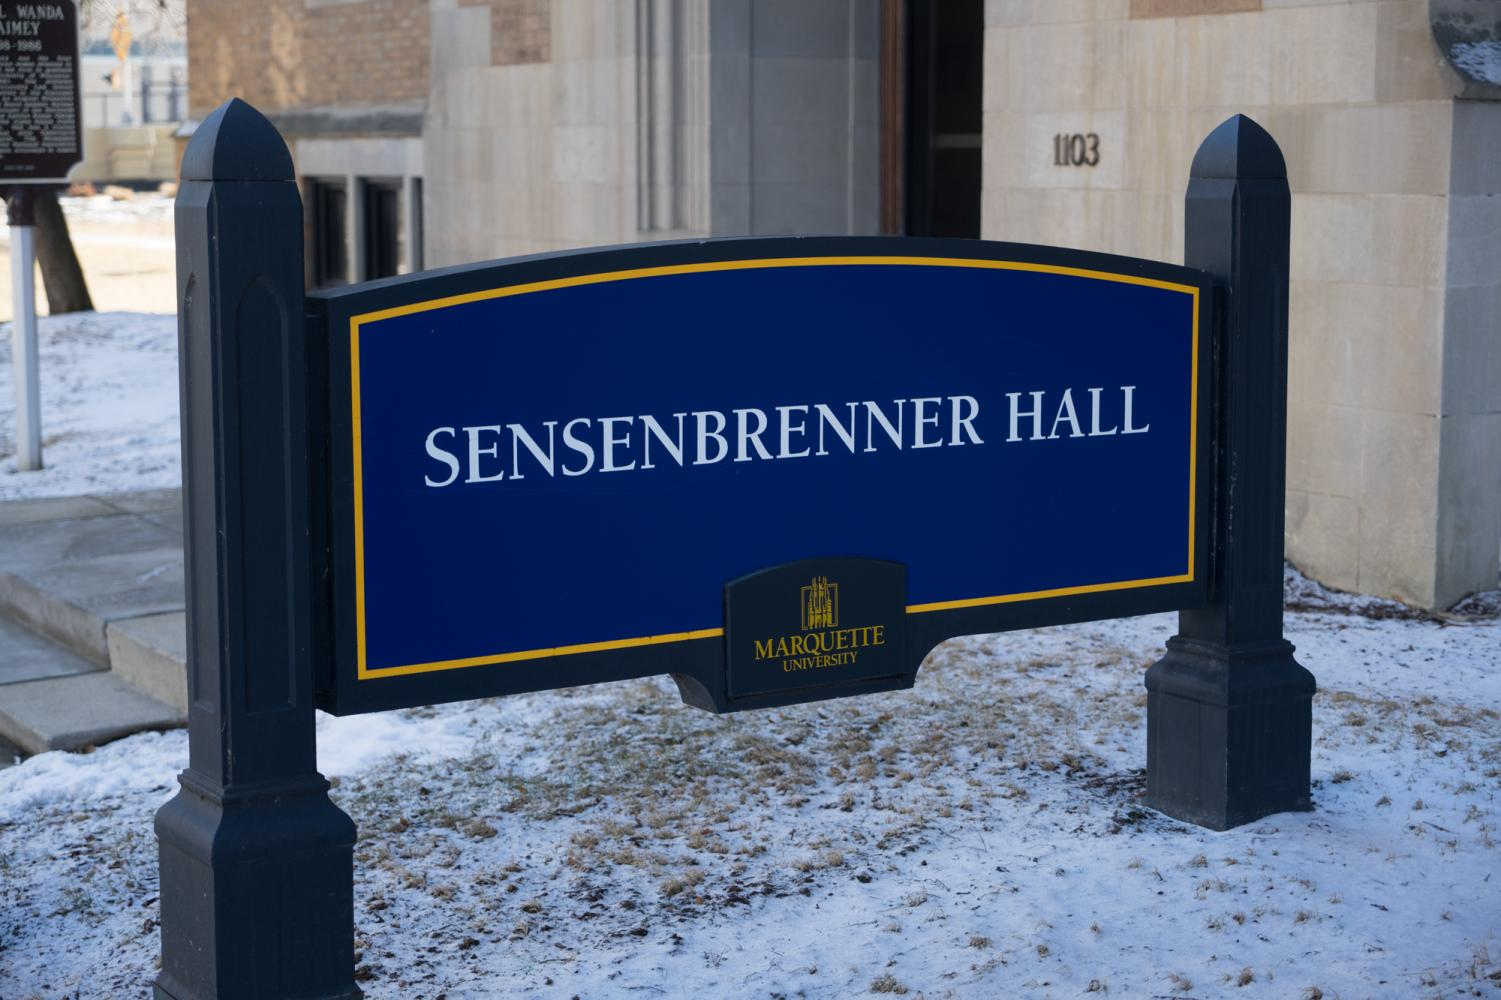 The honors program, which has an office in Sensenbrenner Hall, is offering priority registration for honors students.